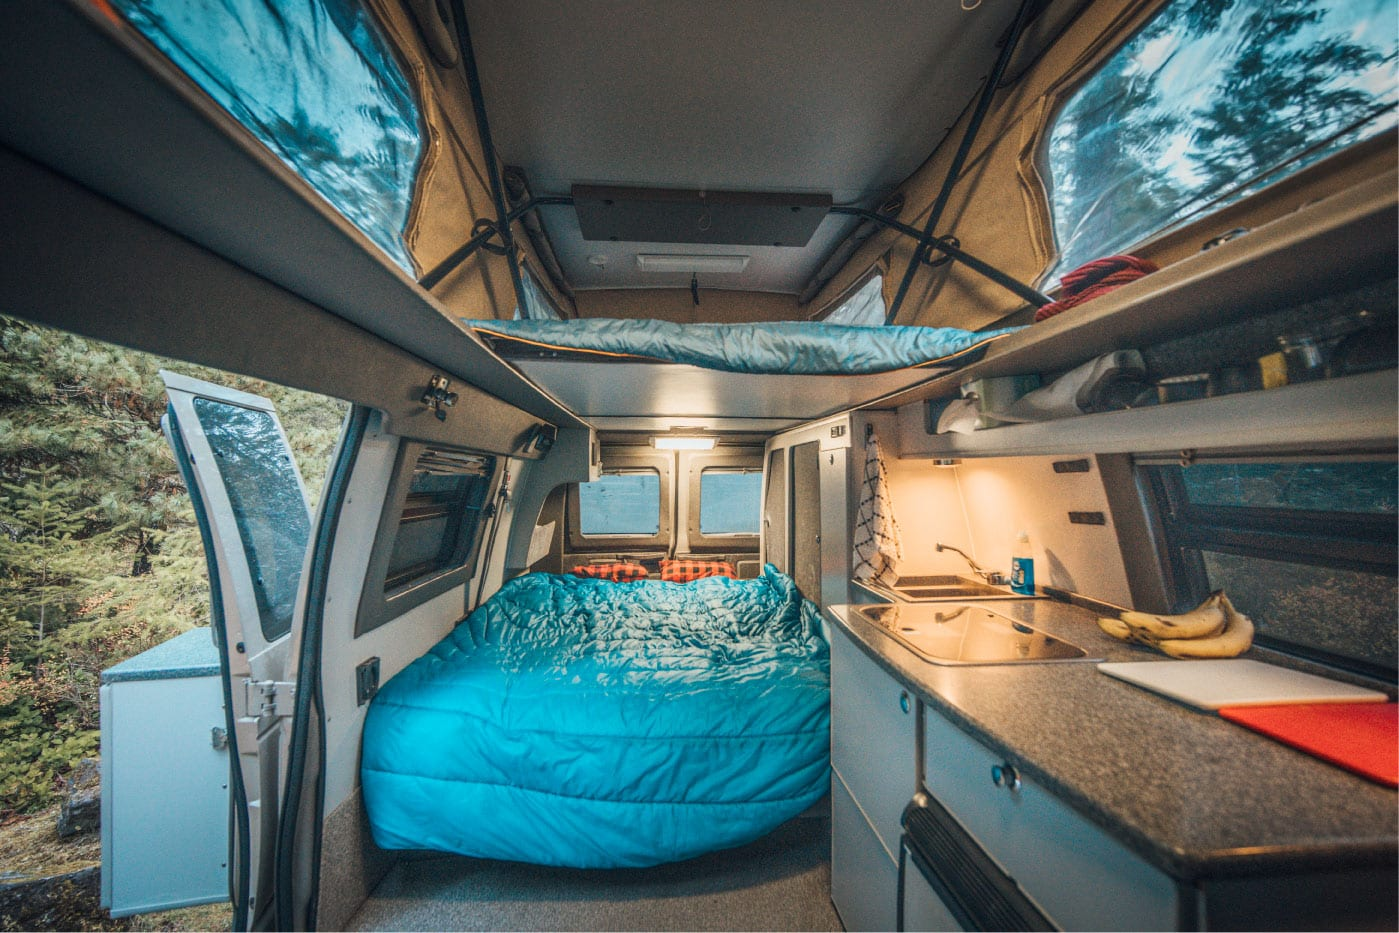 2 beds in a Ford E-Series 4x4 Econoline Sportsmobile EB50 Layout Campervan conversion for sale